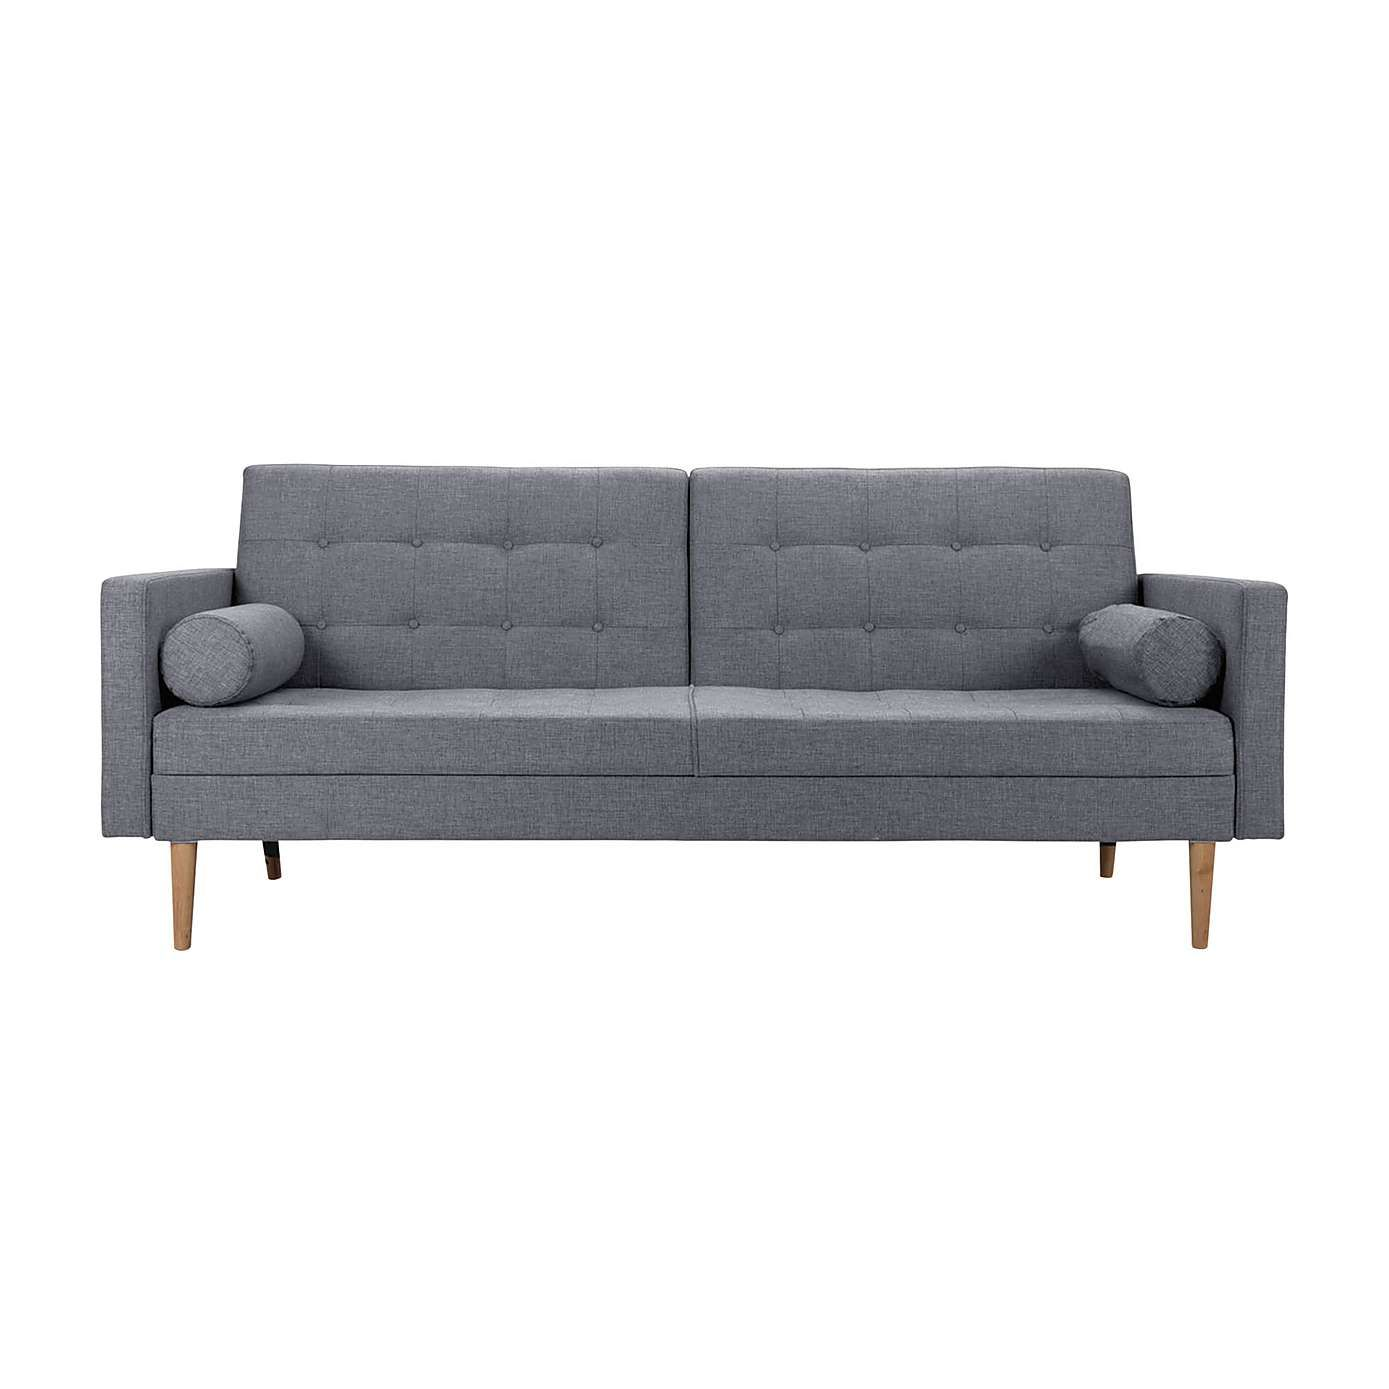 Taylor 3 Seater Sofa Bed With Images 3 Seater Sofa Bed 3 Seater Sofa Three Seater Sofa Bed